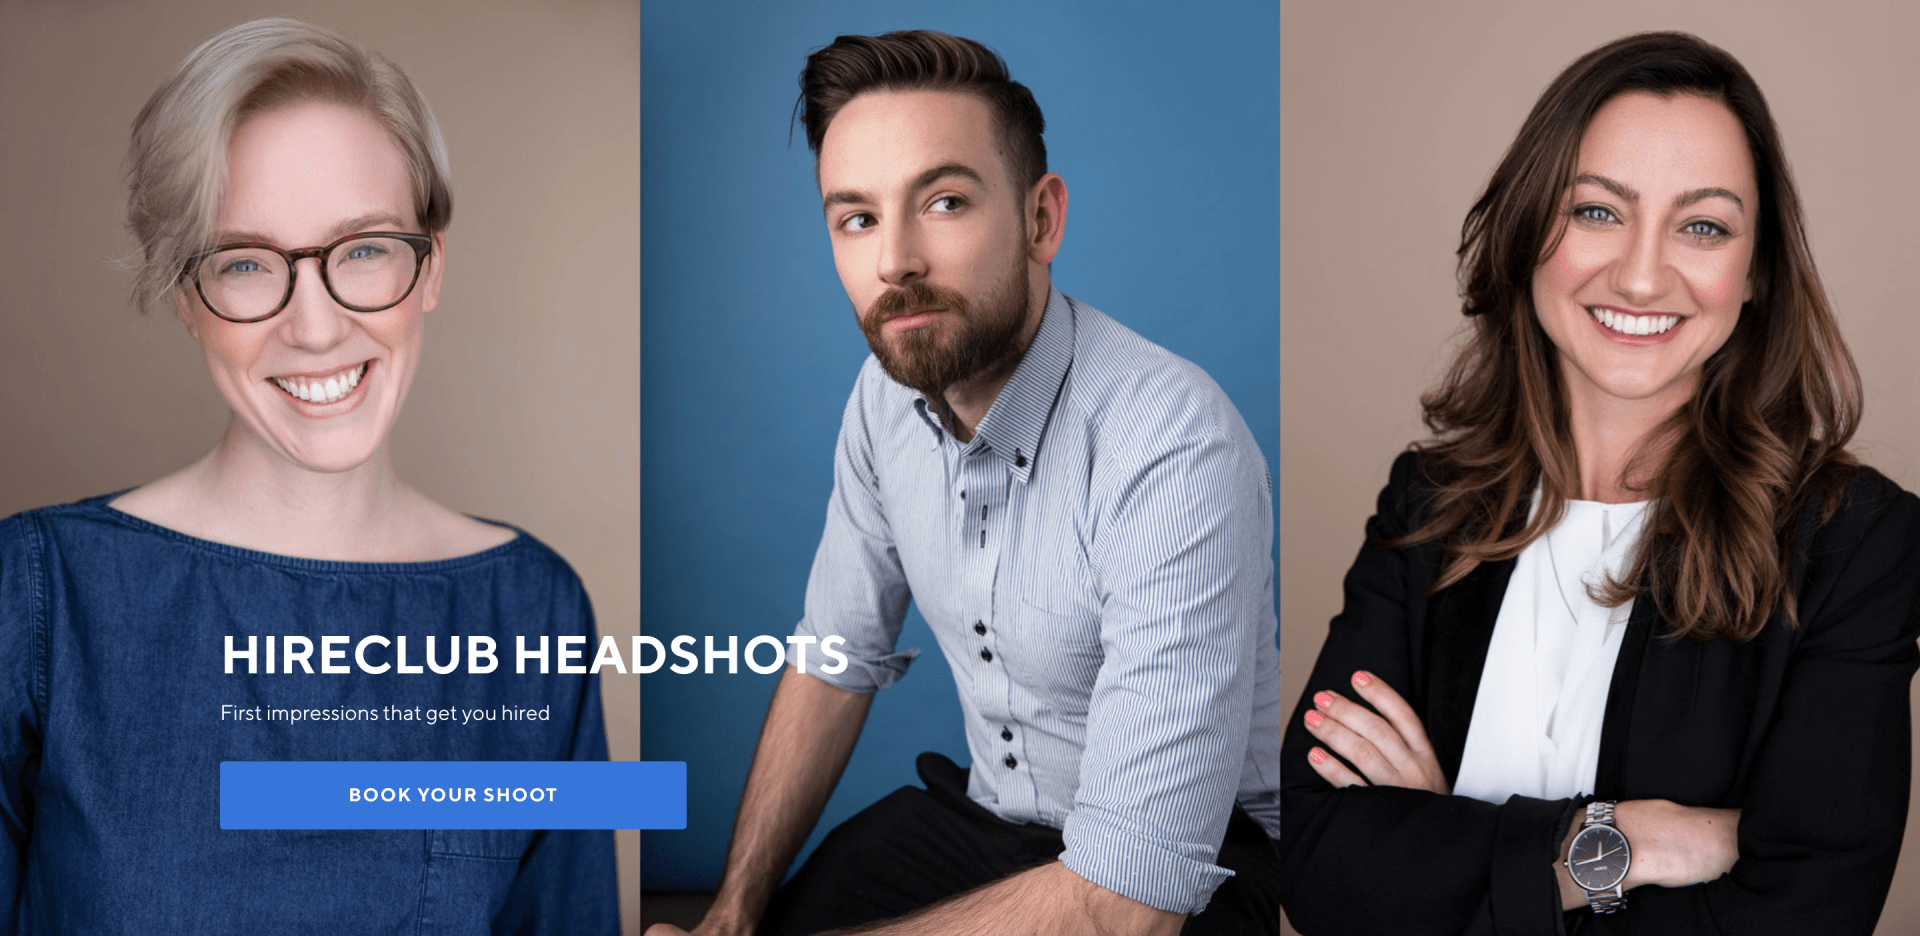 HireClub Headshots